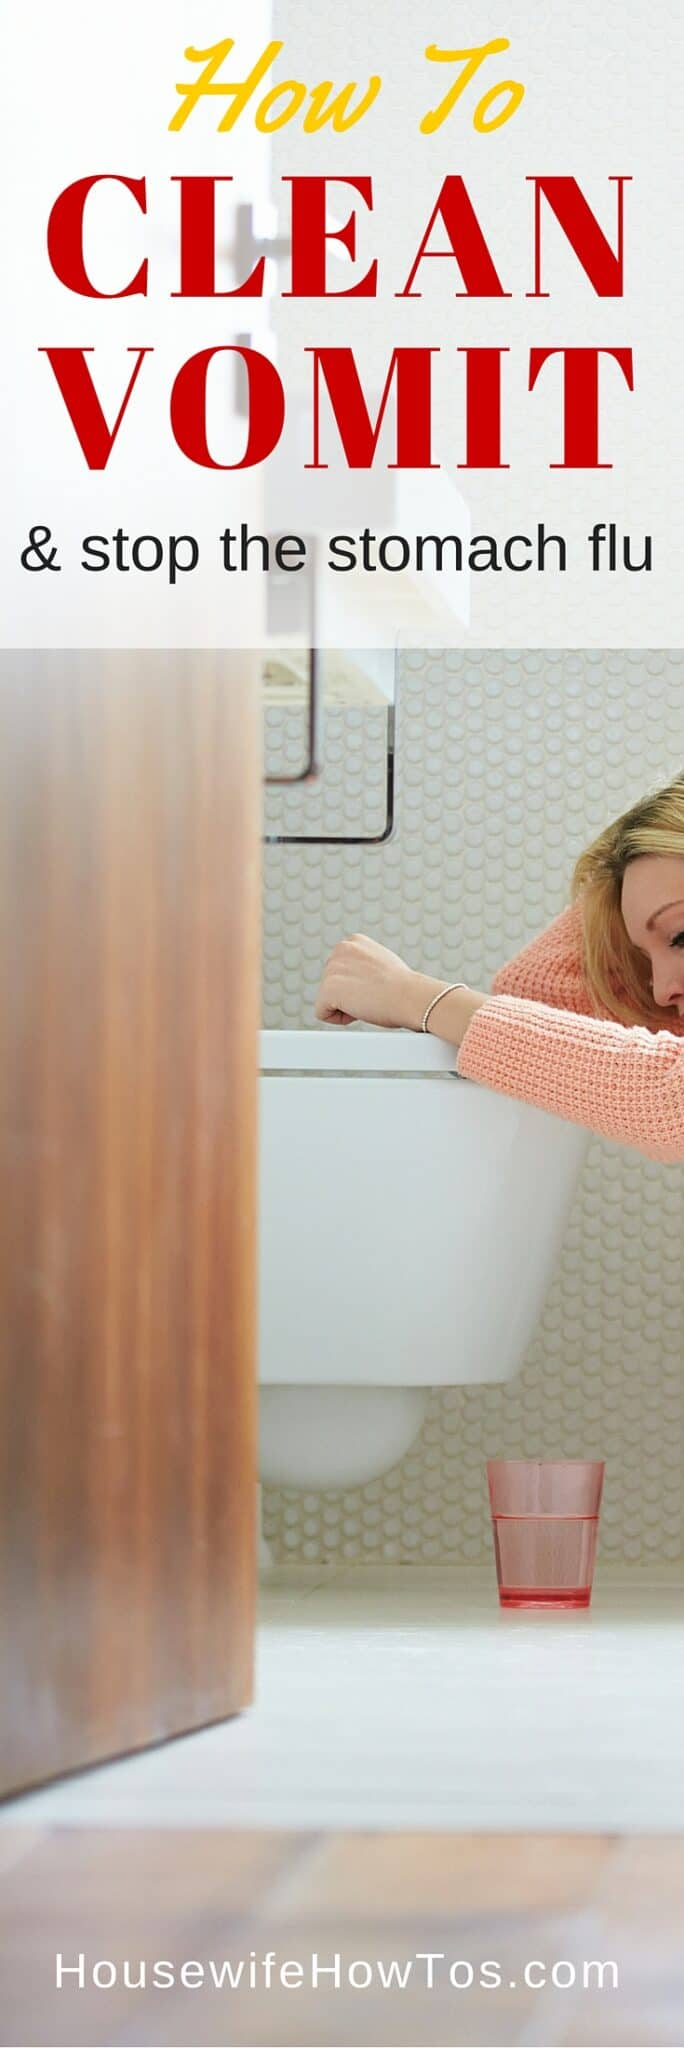 Steps to deal with the mess, even when you're too sick to clean, then keep the illness from spreading throughout the house.